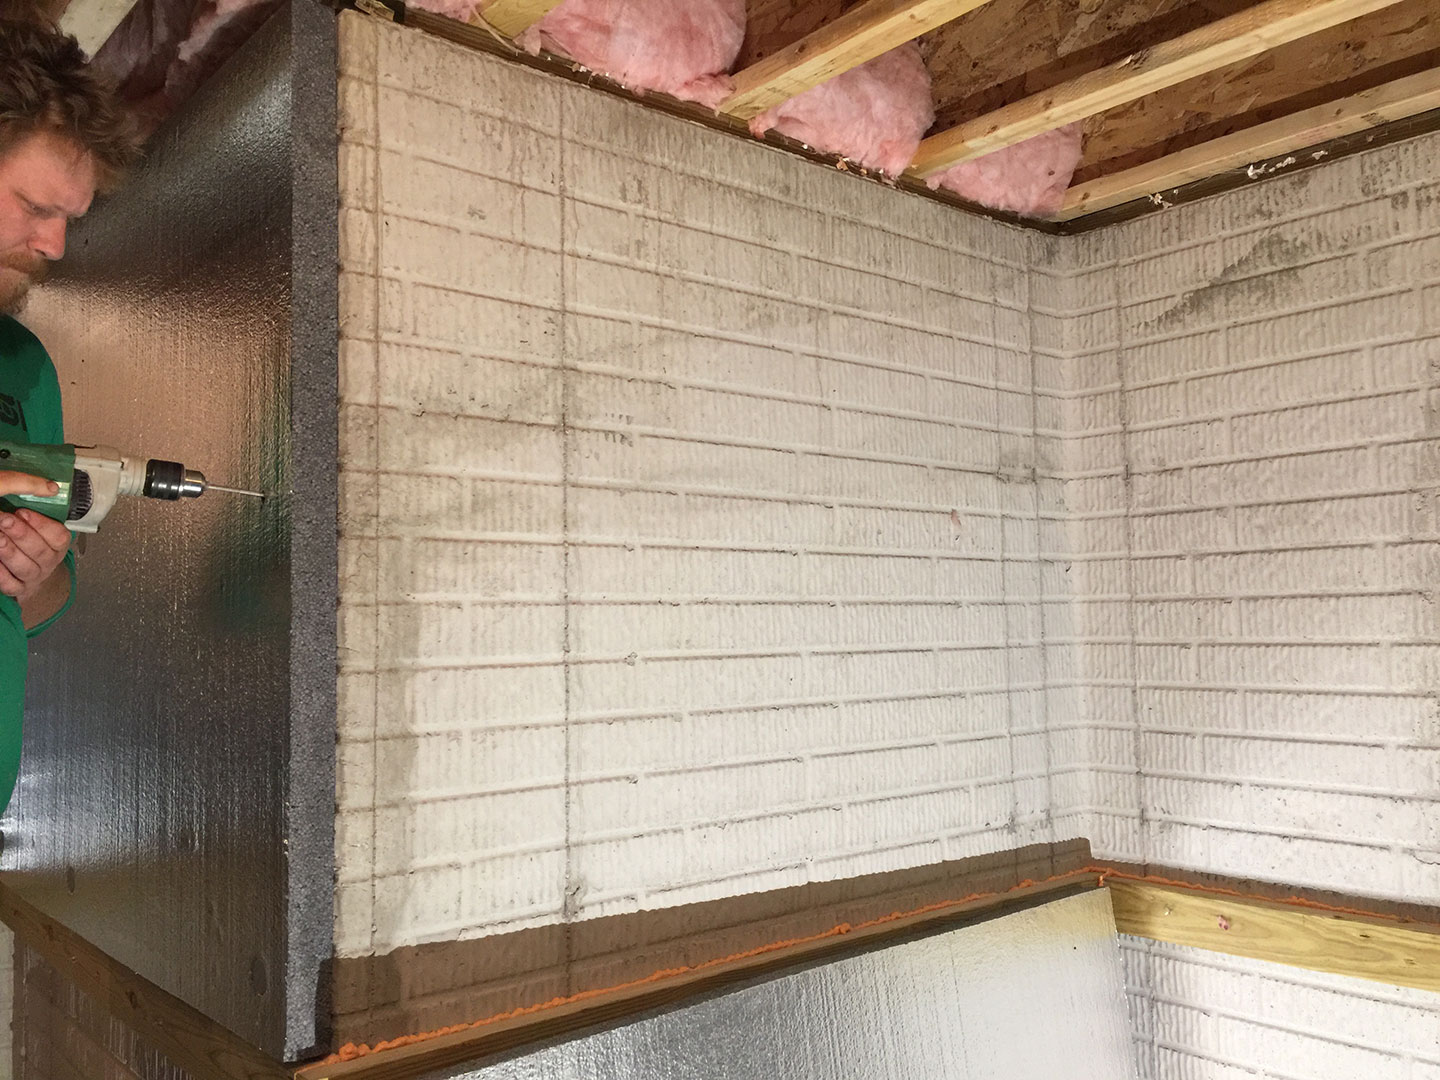 Pictured is during installation of the graphite infused foam insulation. You can also see that the wall has been air sealed along the bottom.